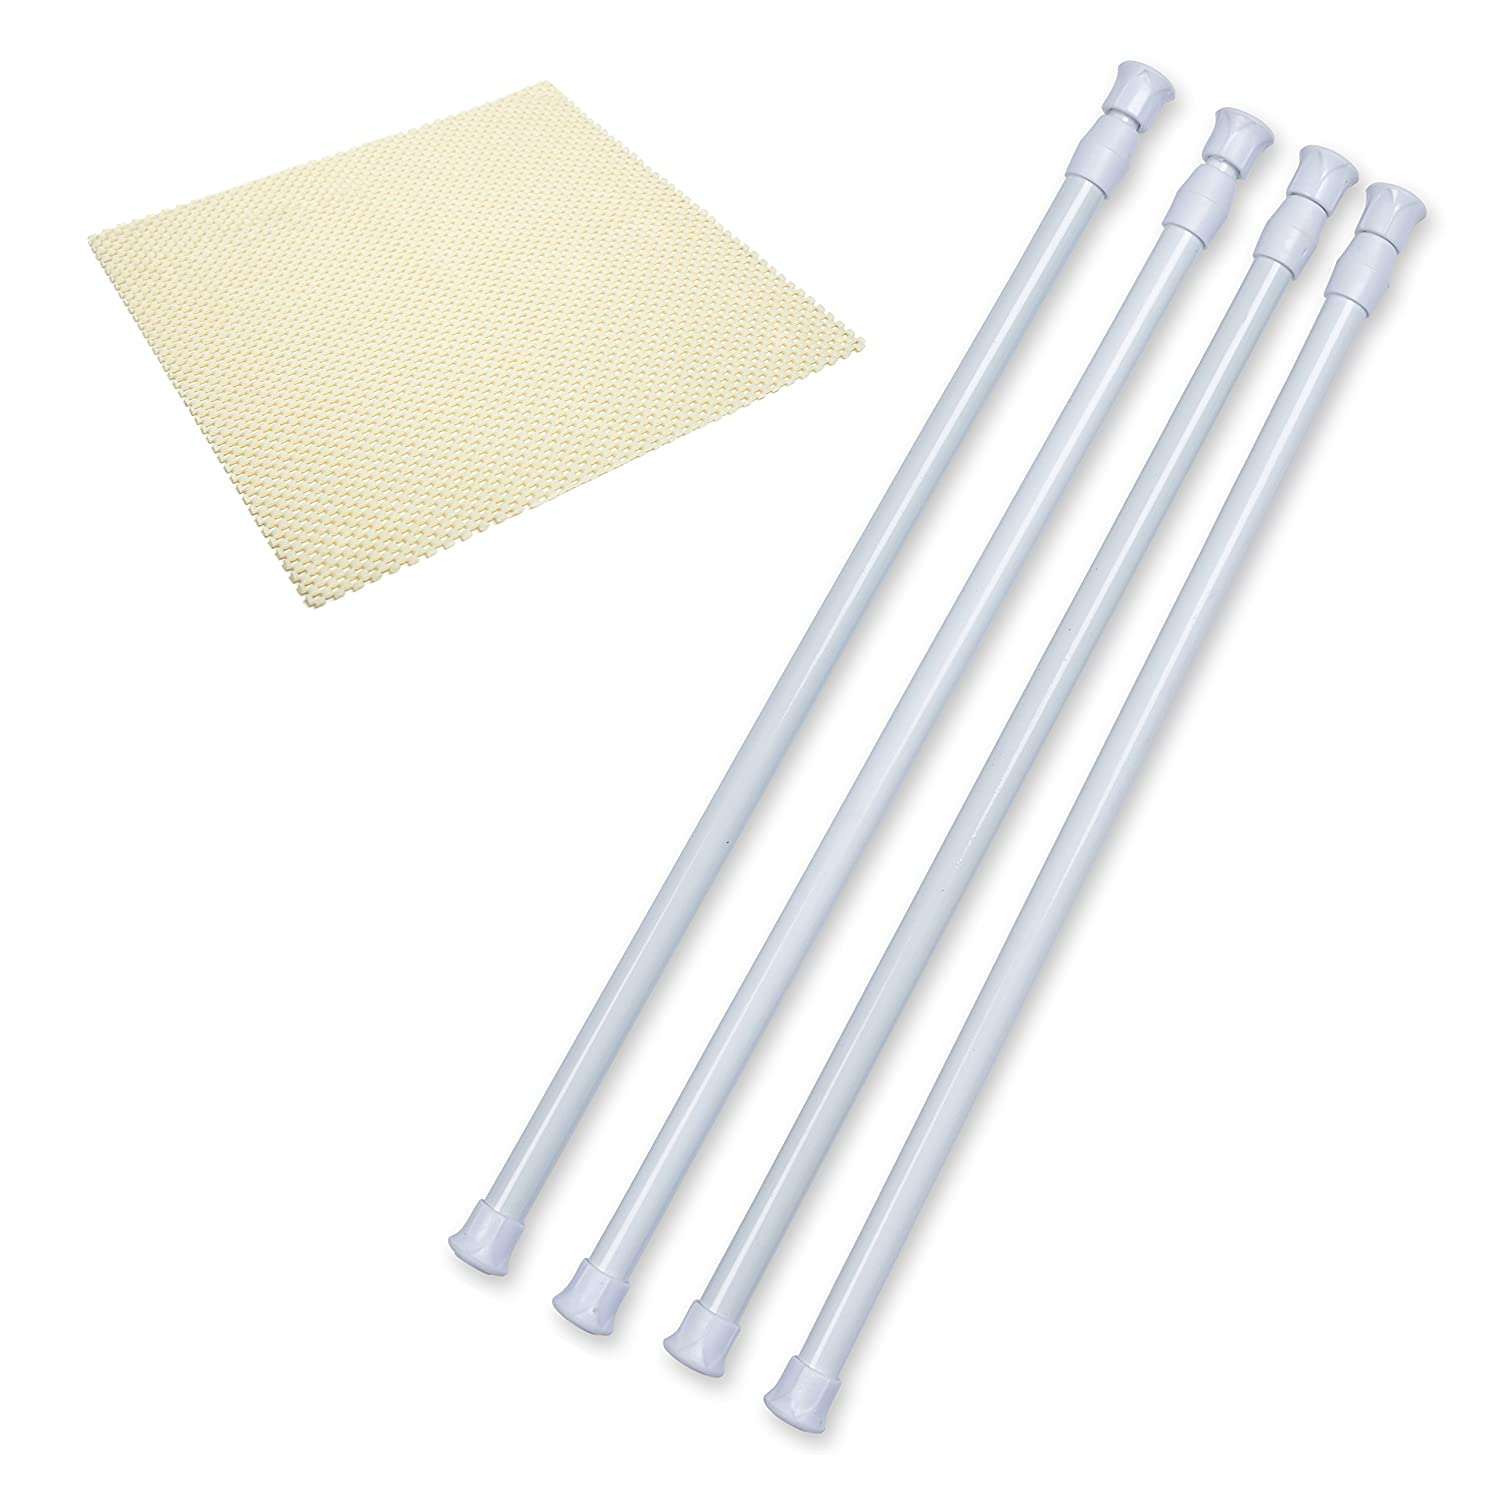 Danily 4 Pack Cupboard Bars Adjustable Spring Curtain Tension Rods 15.7 to 28 Inches, Comes with a Non Slip Shelf Liner